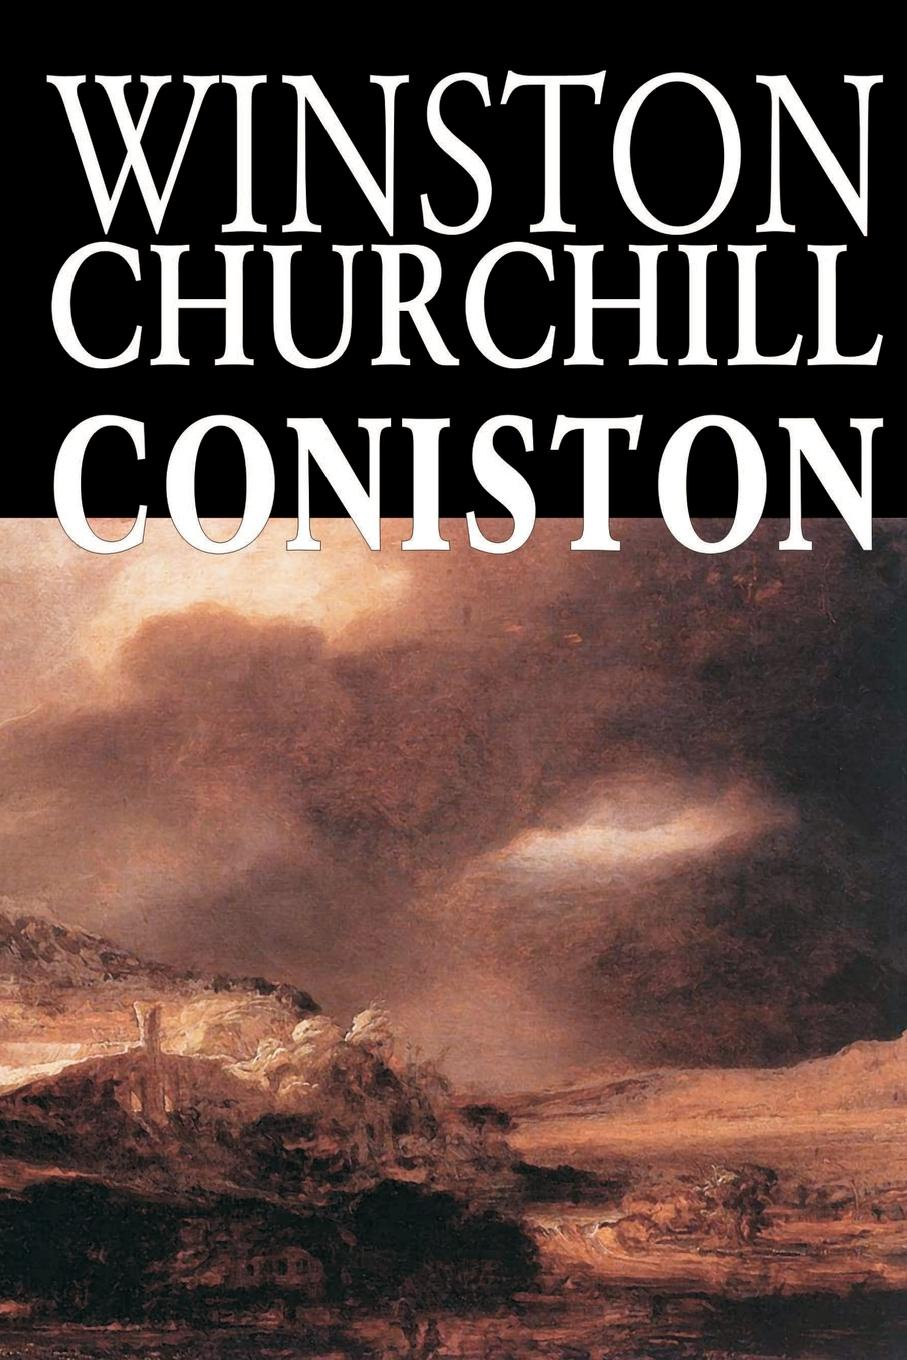 Coniston by Winston Churchill, Fiction